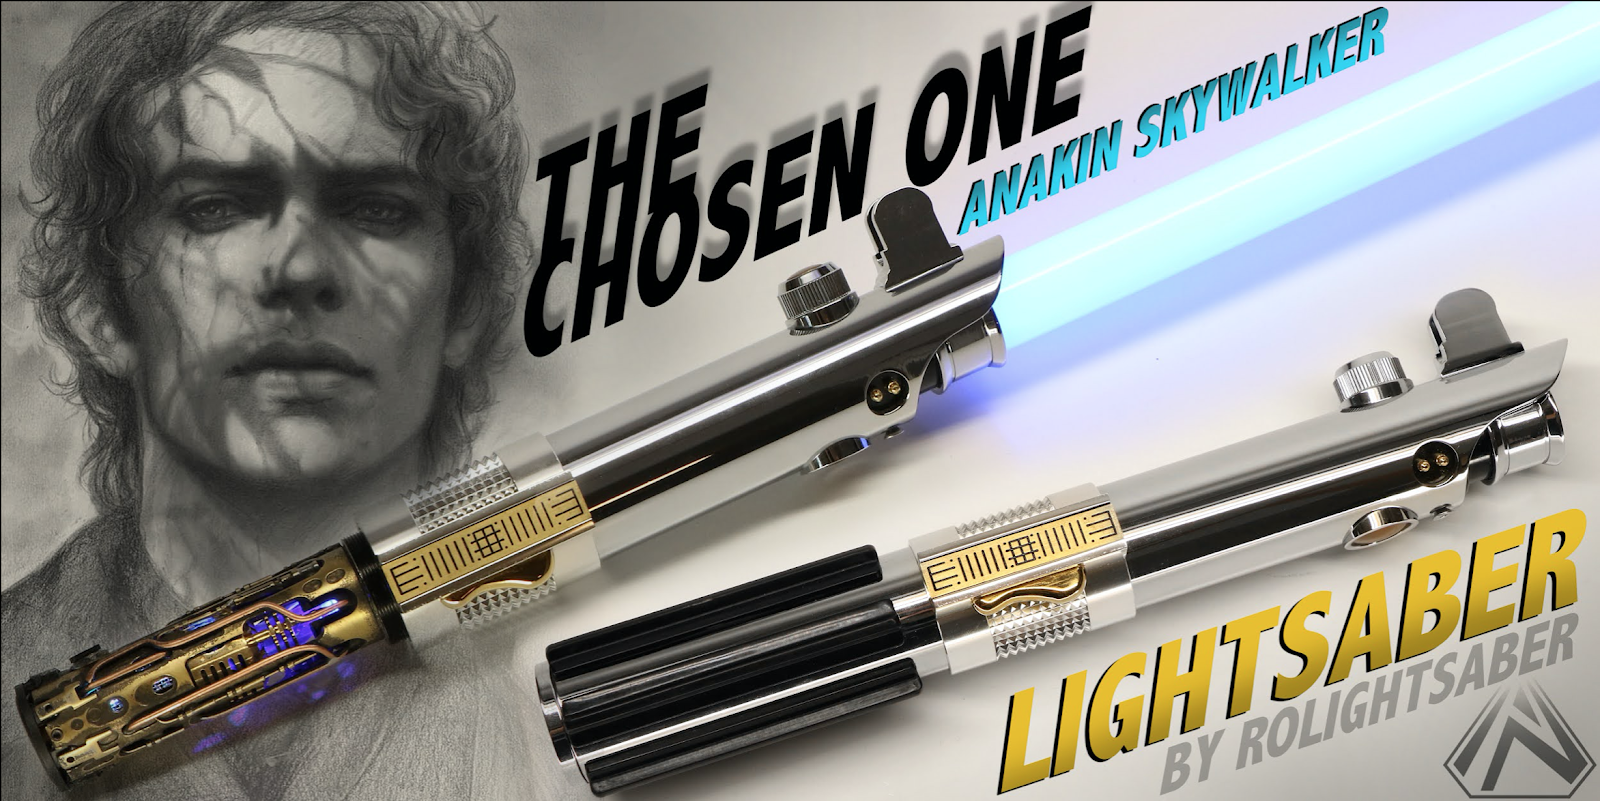 The Chosen One ANAKIN Lightsaber